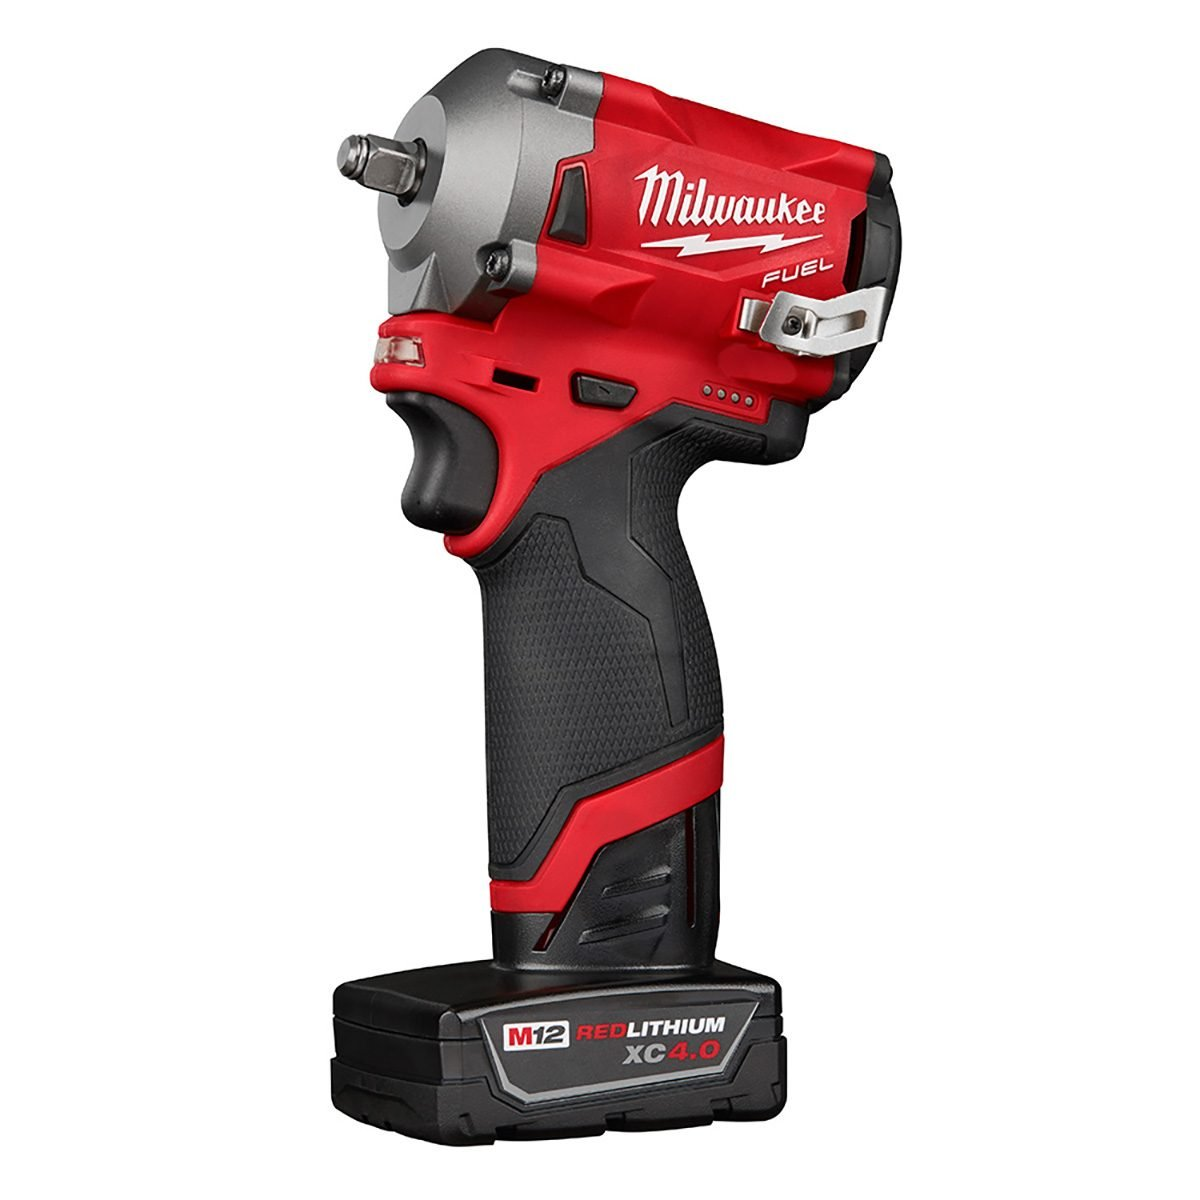 The body of Milwaukee's cordless stubby impact wrench | Construction Pro Tips